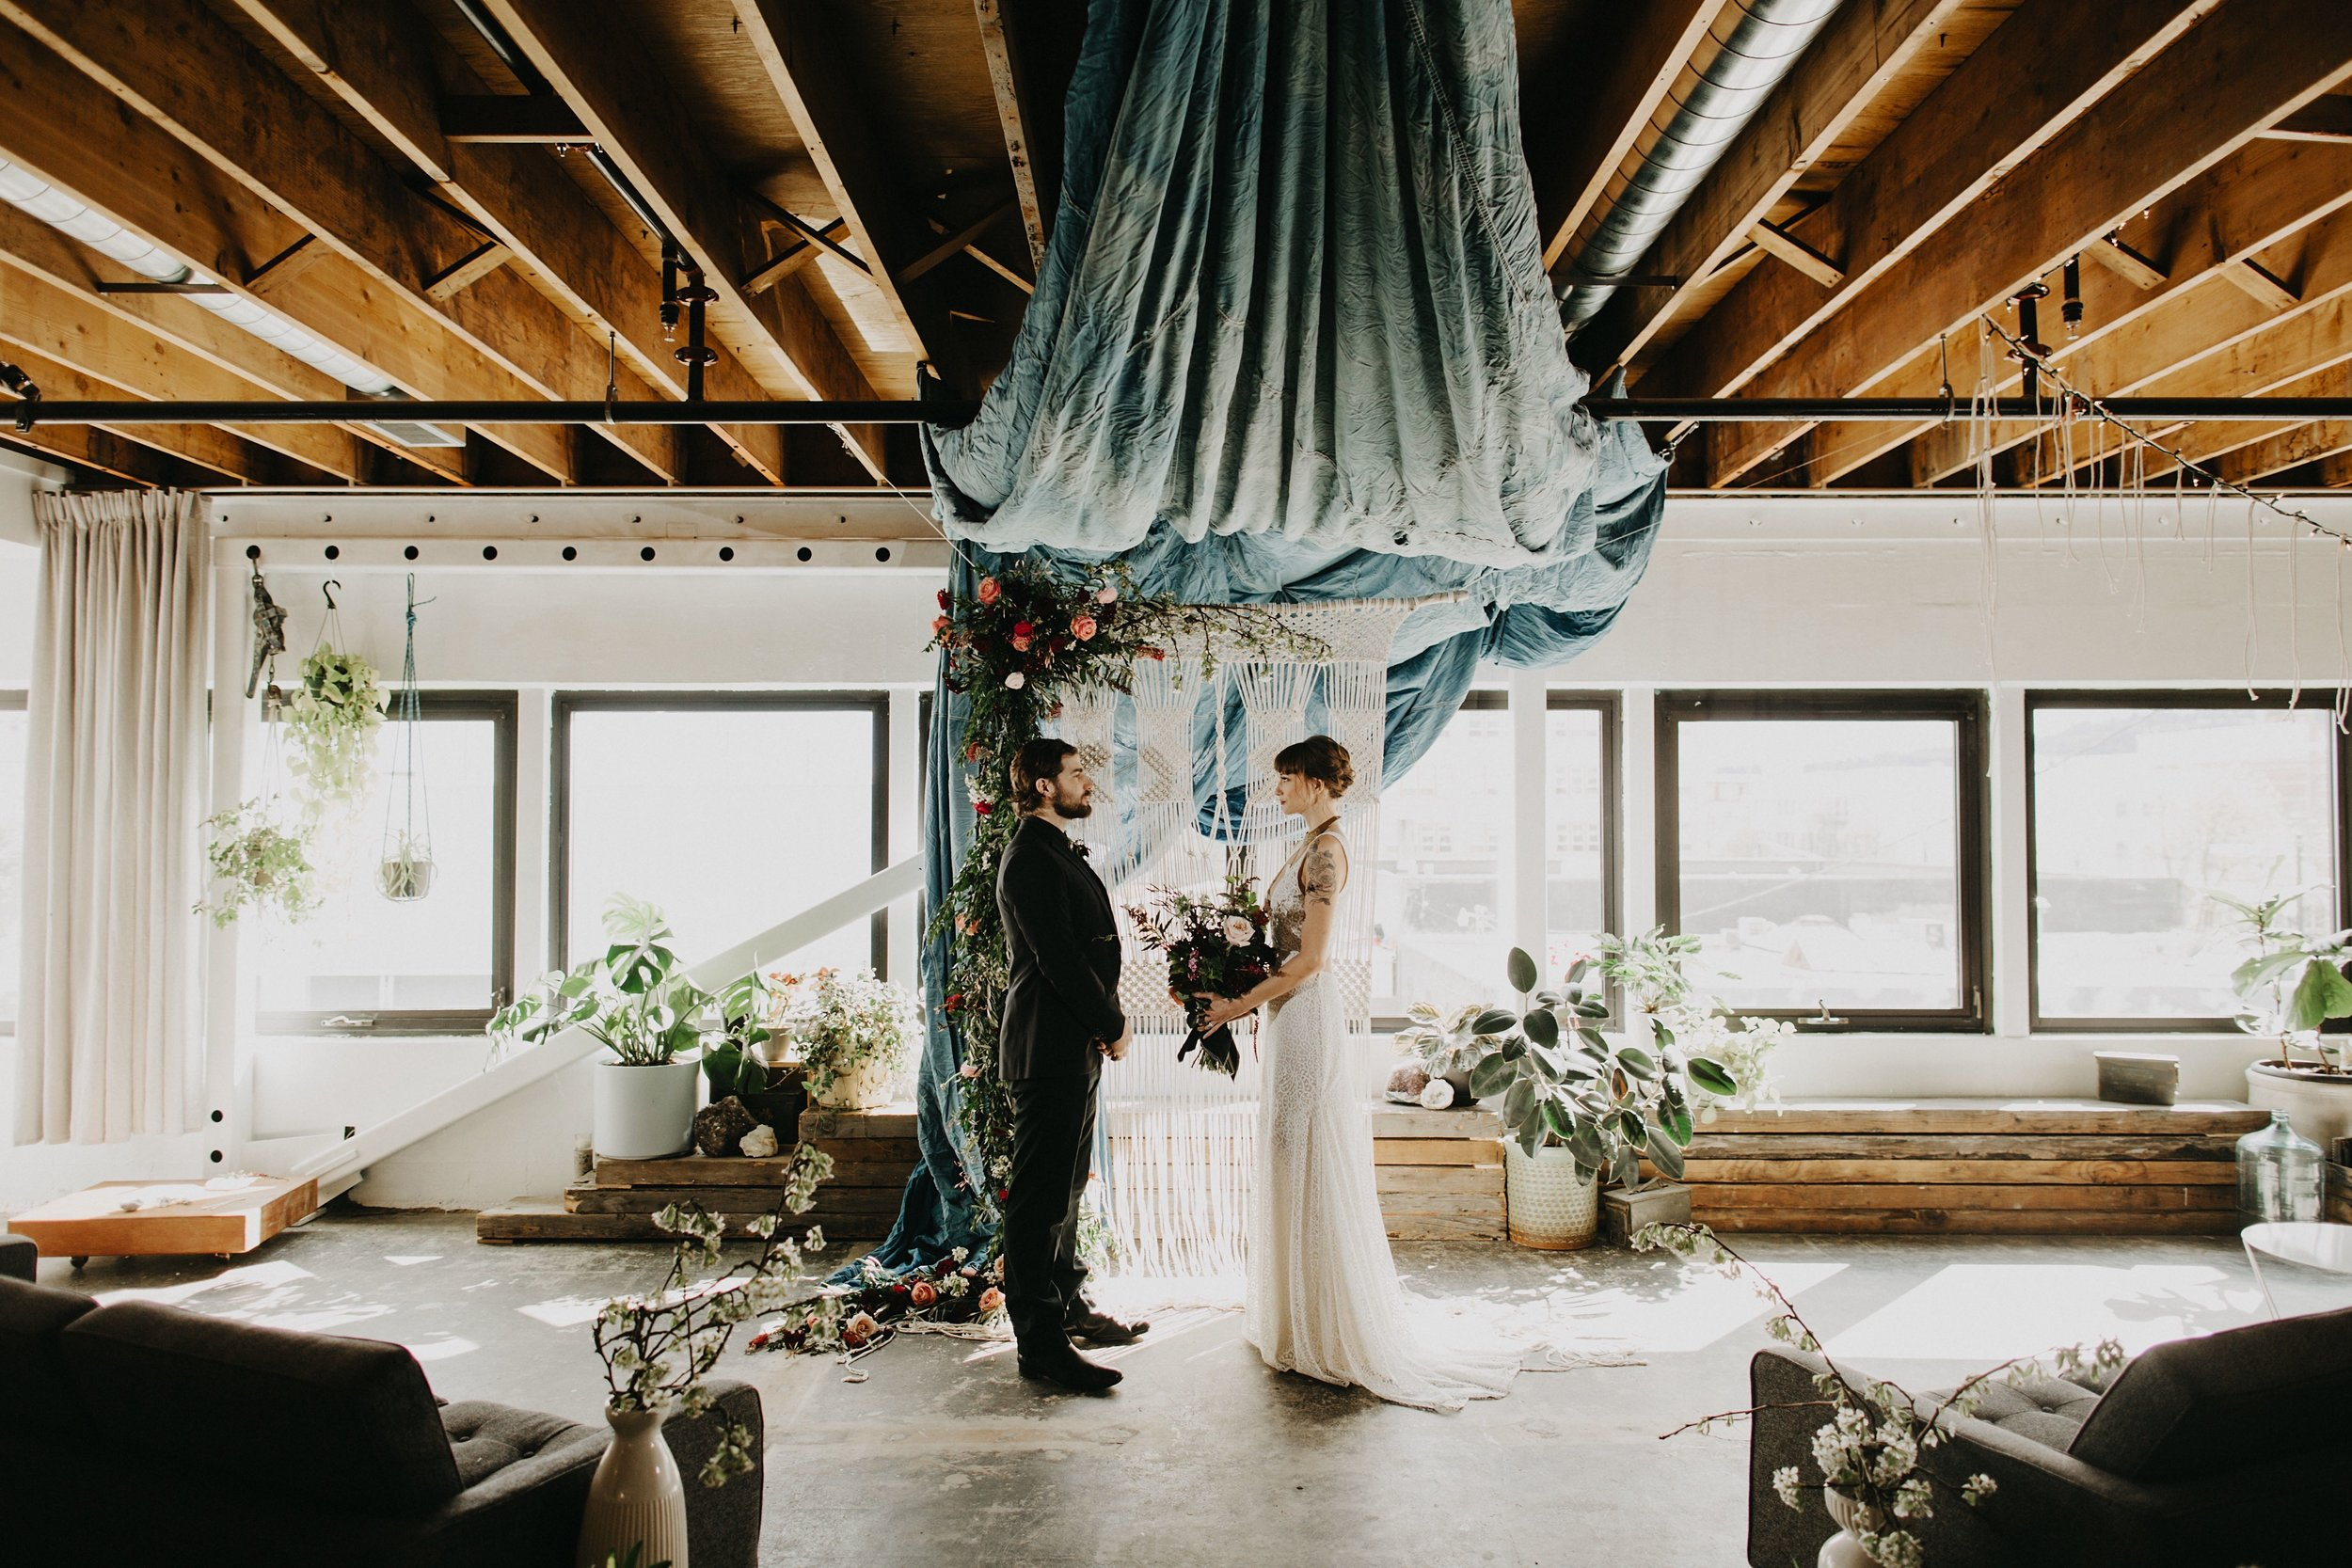 portland-wedding-venue-union-pine34.jpg